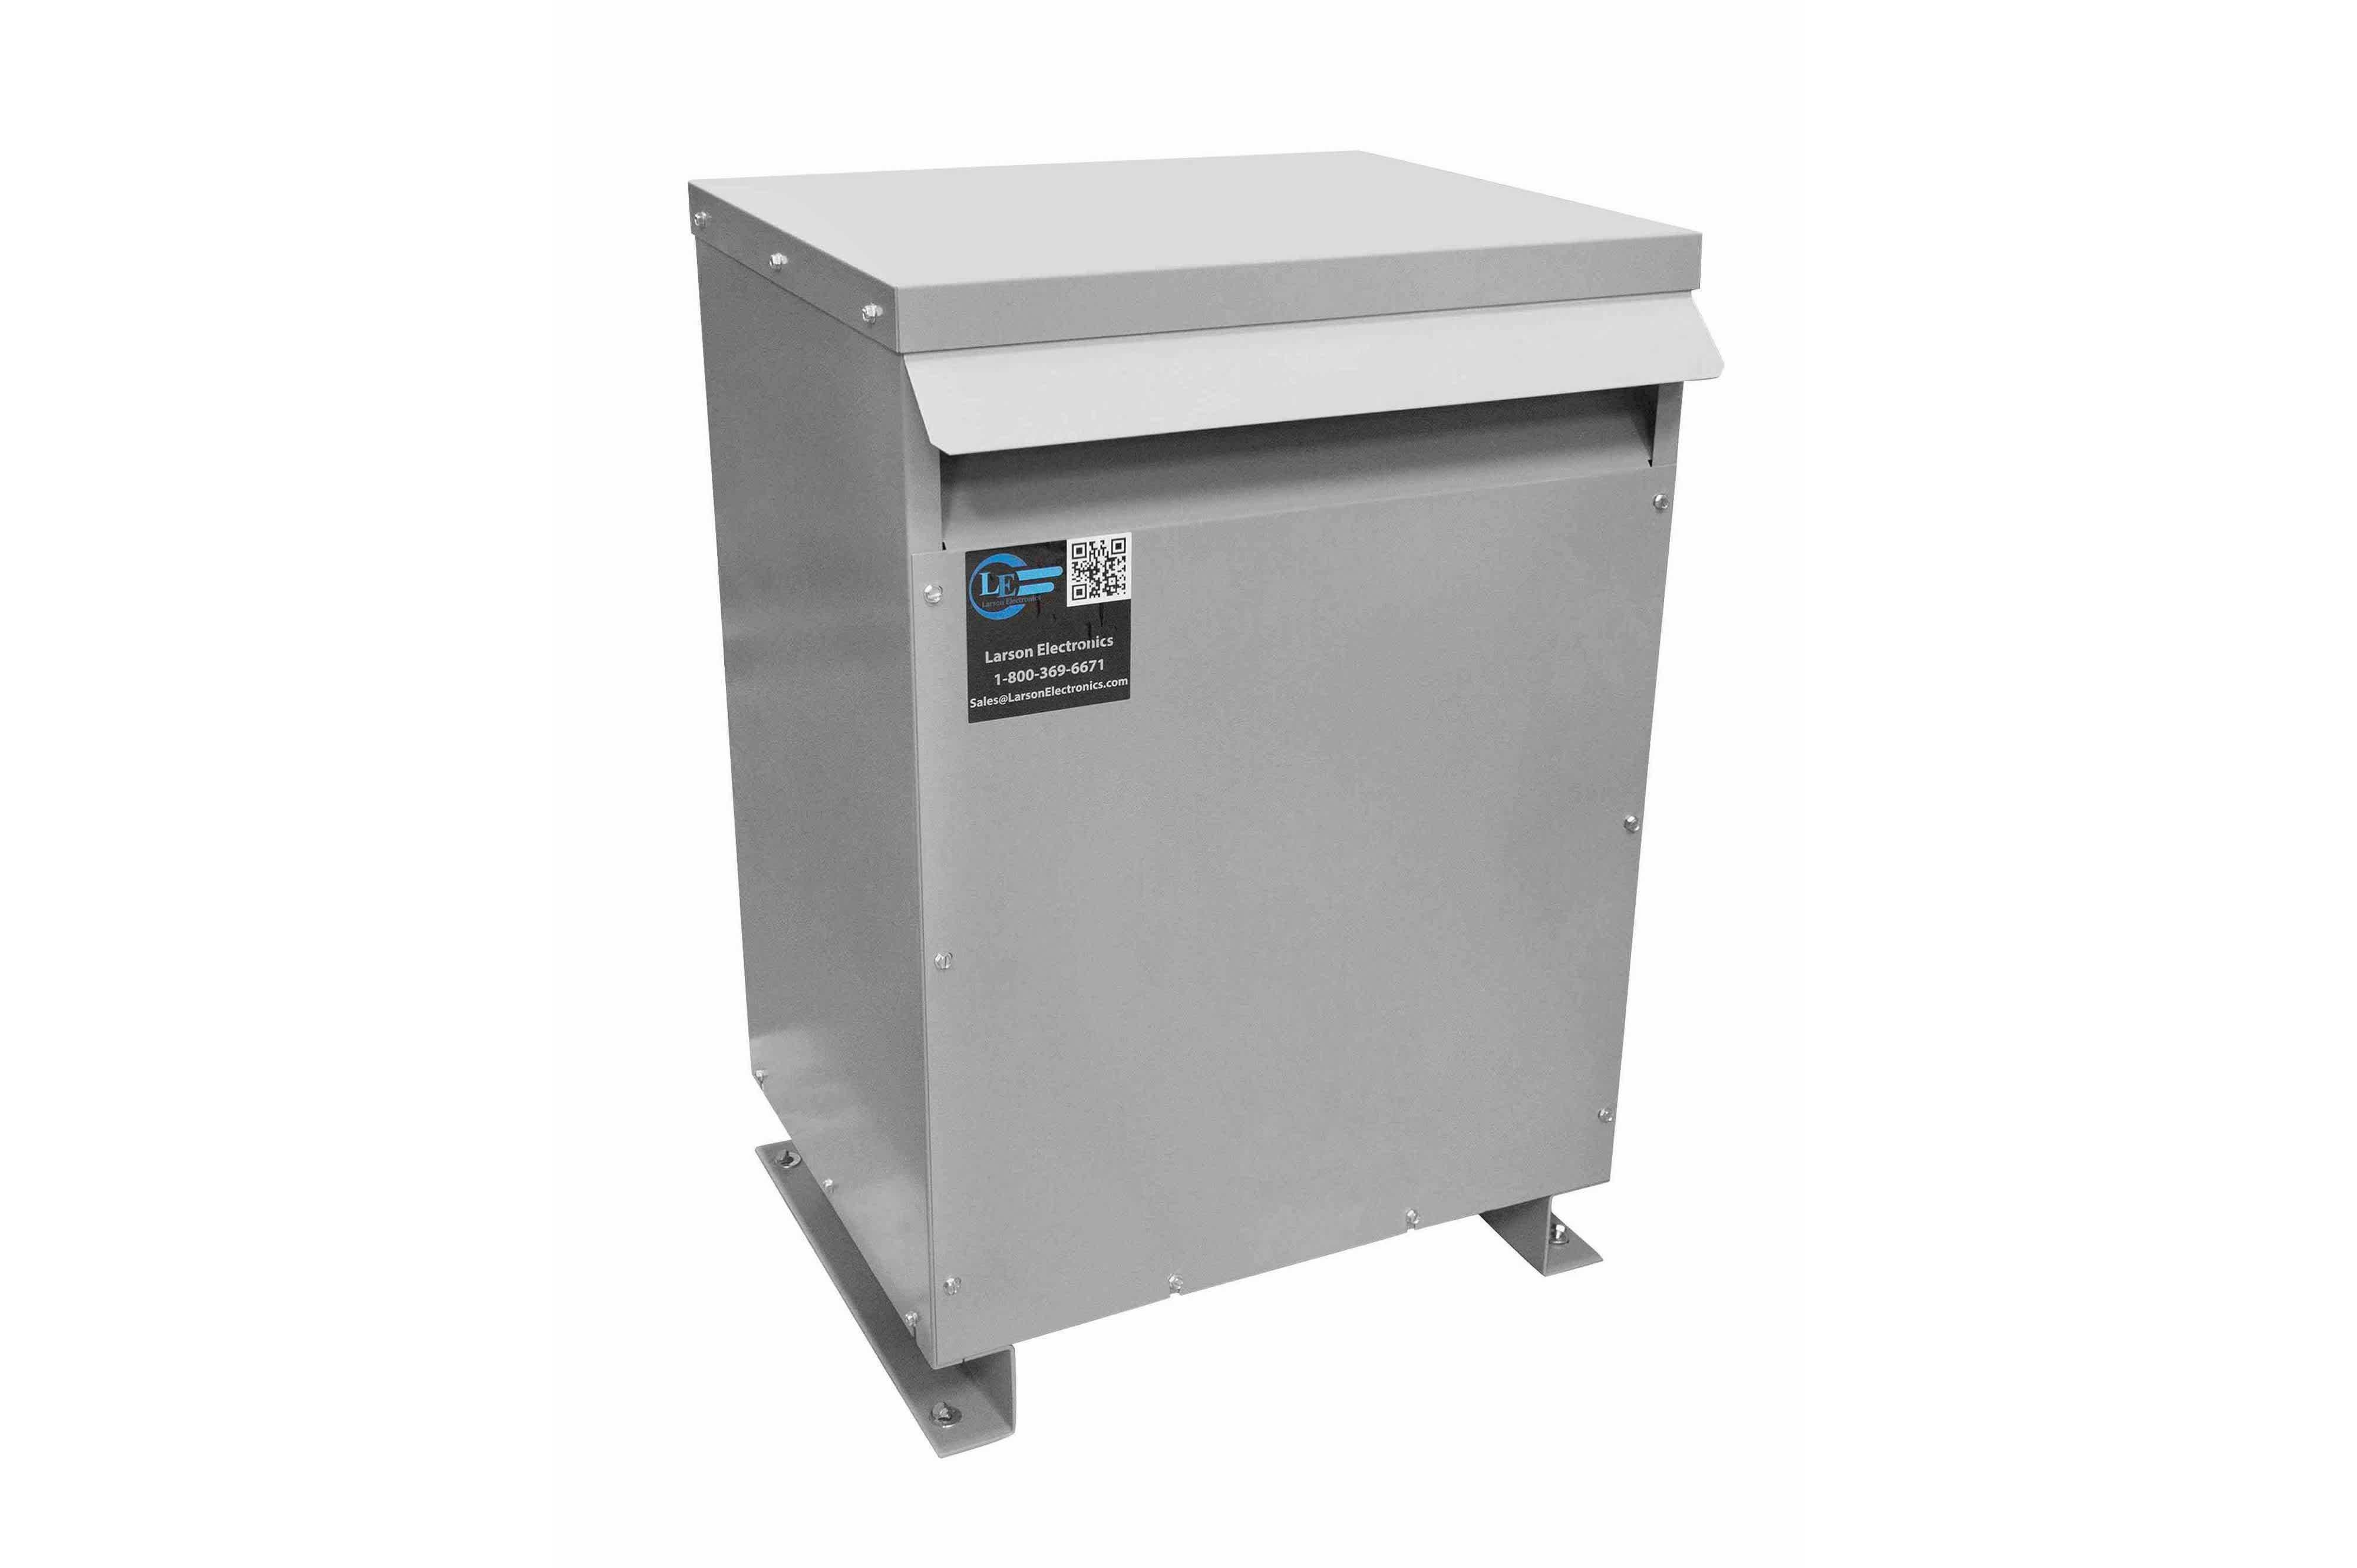 112.5 kVA 3PH Isolation Transformer, 230V Delta Primary, 480V Delta Secondary, N3R, Ventilated, 60 Hz